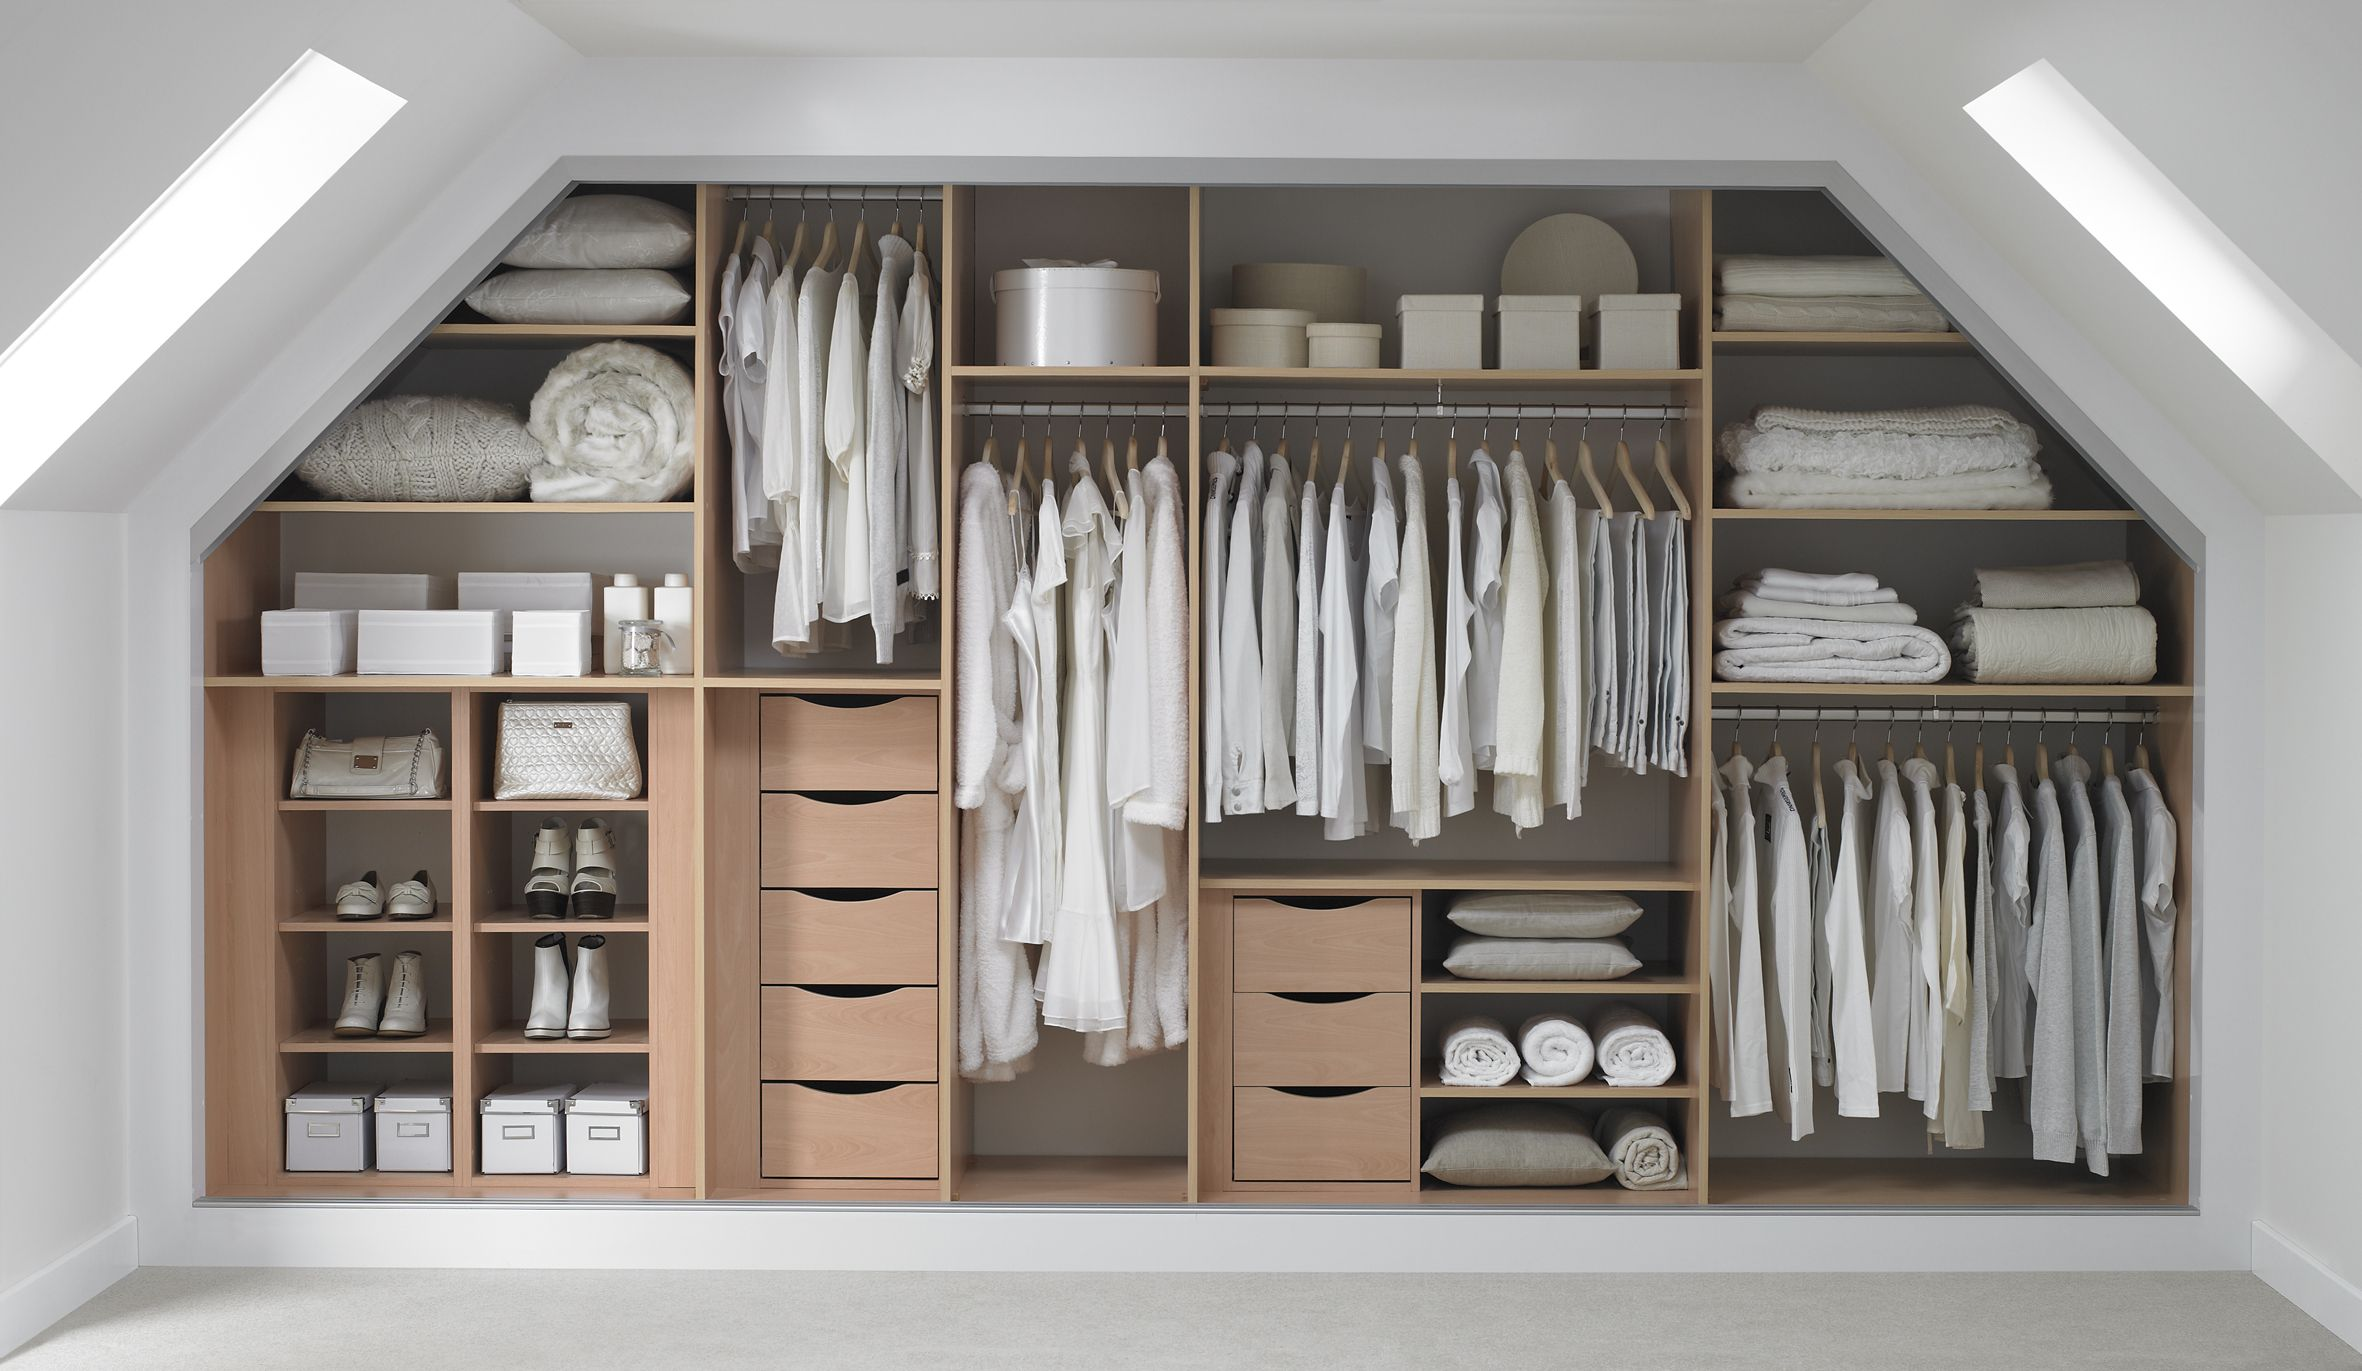 Different types of fitted wardrobe interiors - Fitted bedroom wardrobe ideas